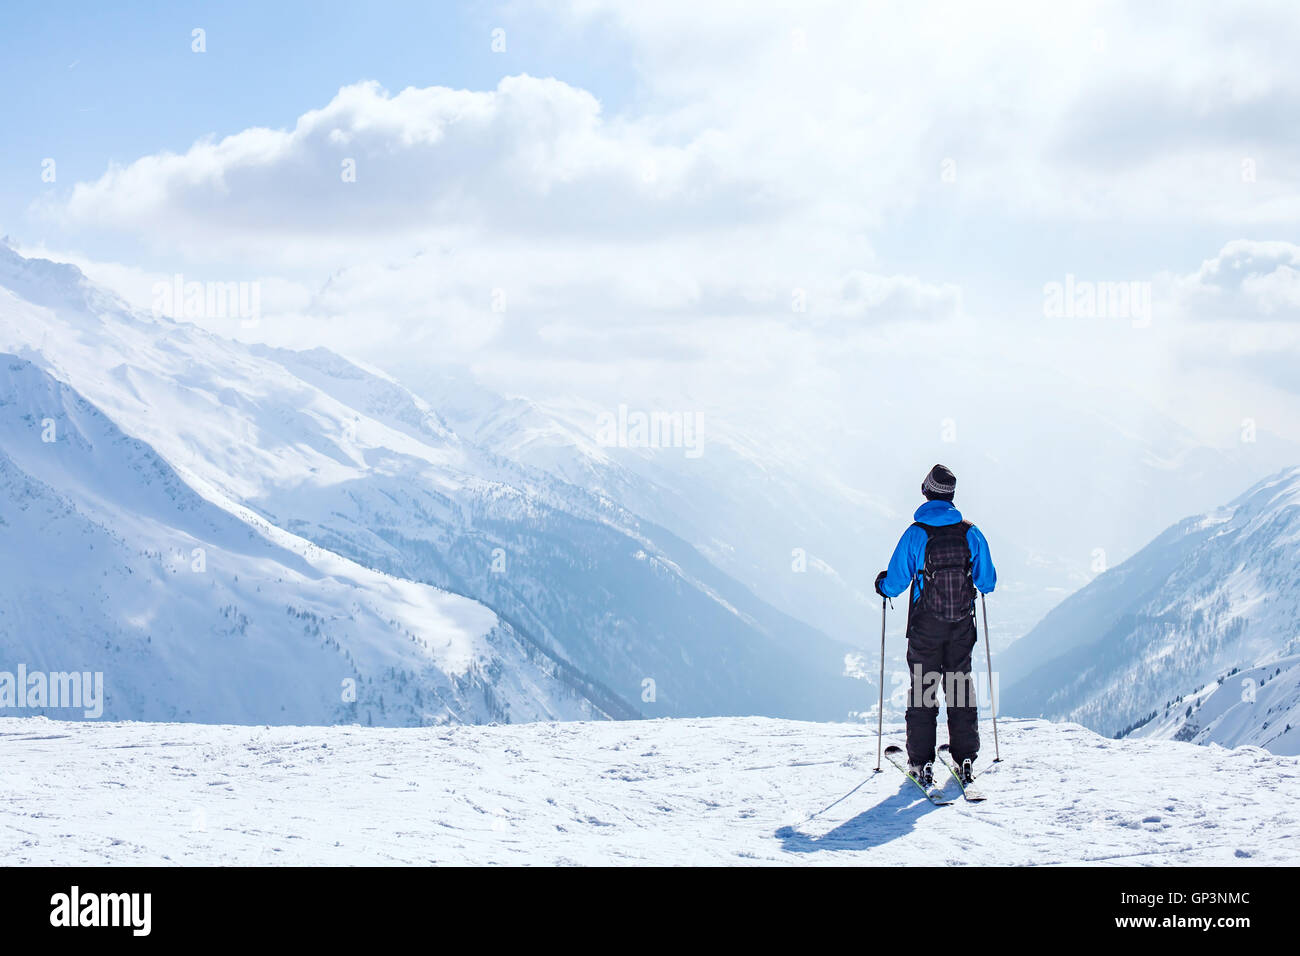 skiing background, skier in beautiful mountain landscape, winter holidays in Alps - Stock Image